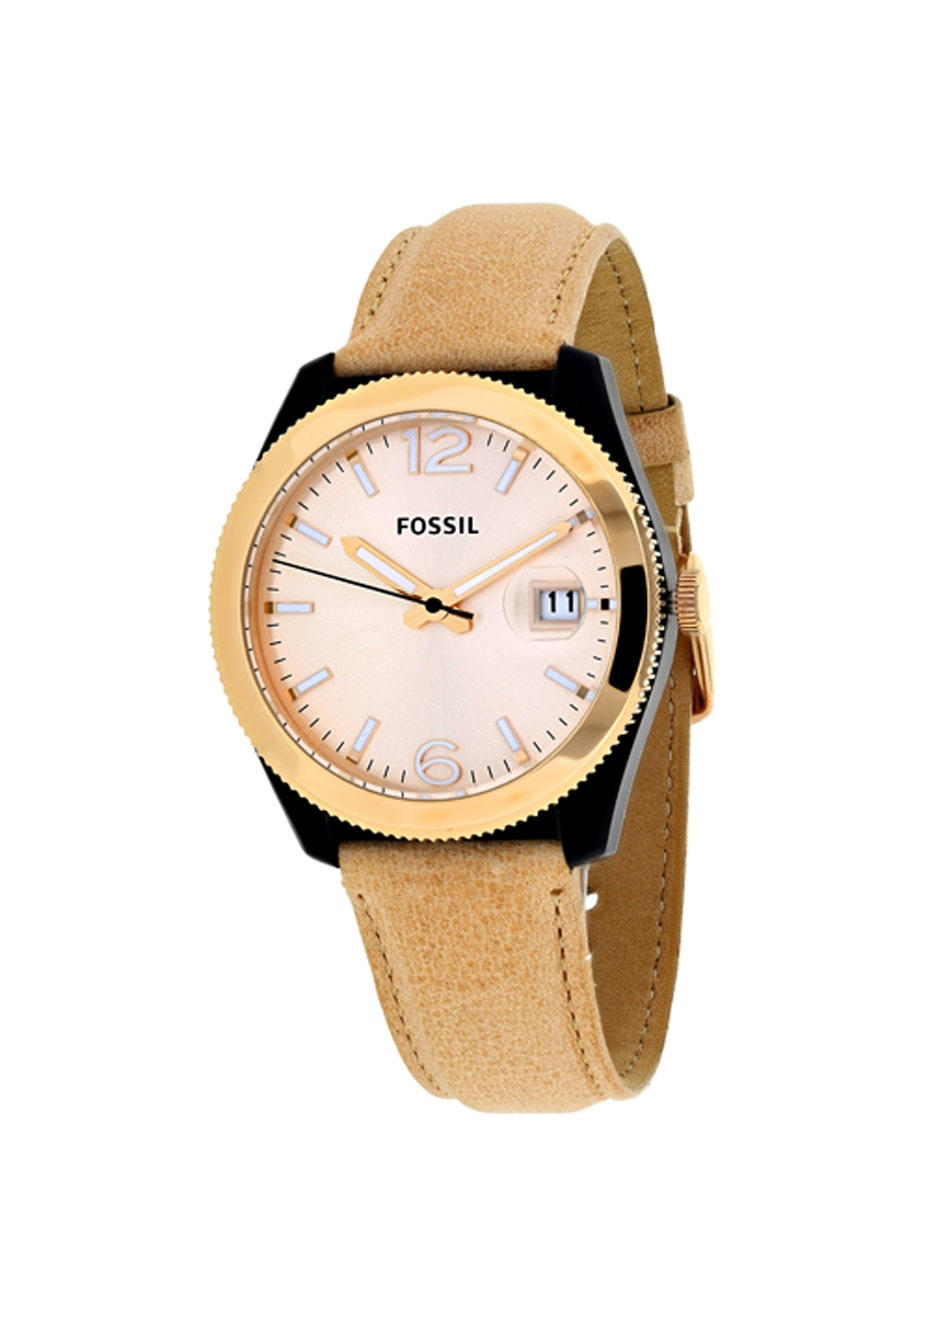 Fossil Women's Perfect Boyfriend - Rose gold/Brown